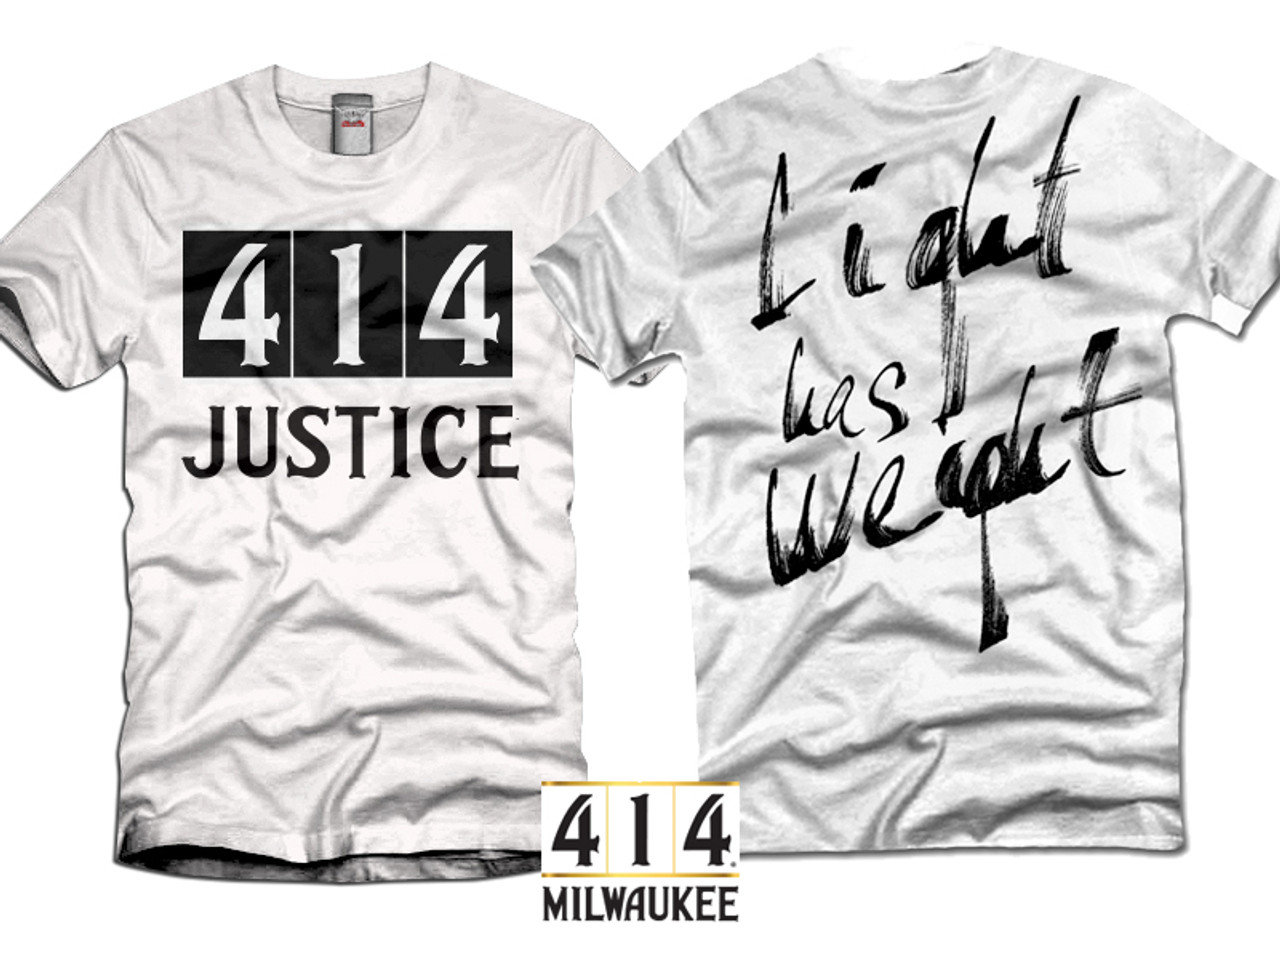 414 Justice. Light has Weight.